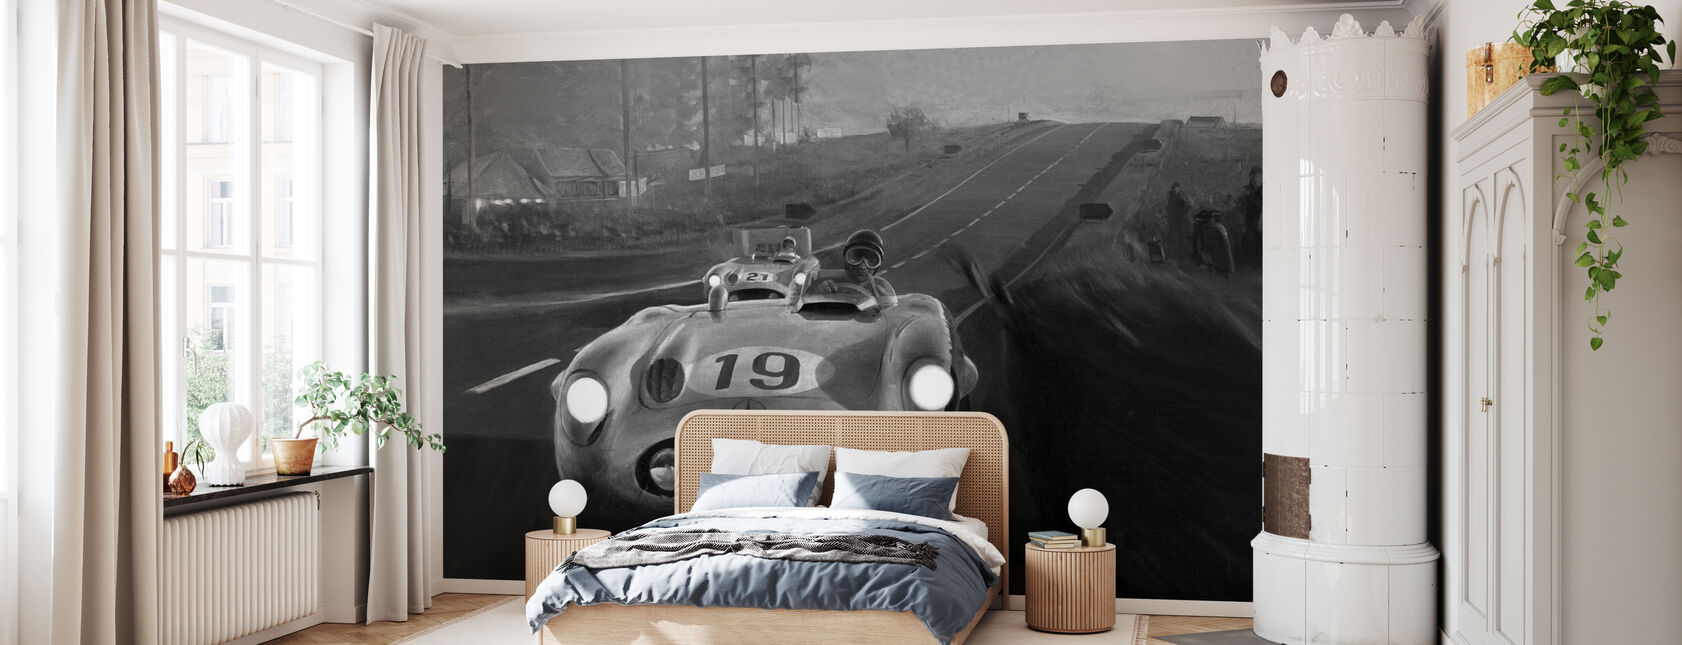 Old Classic Car BW - Wallpaper - Bedroom